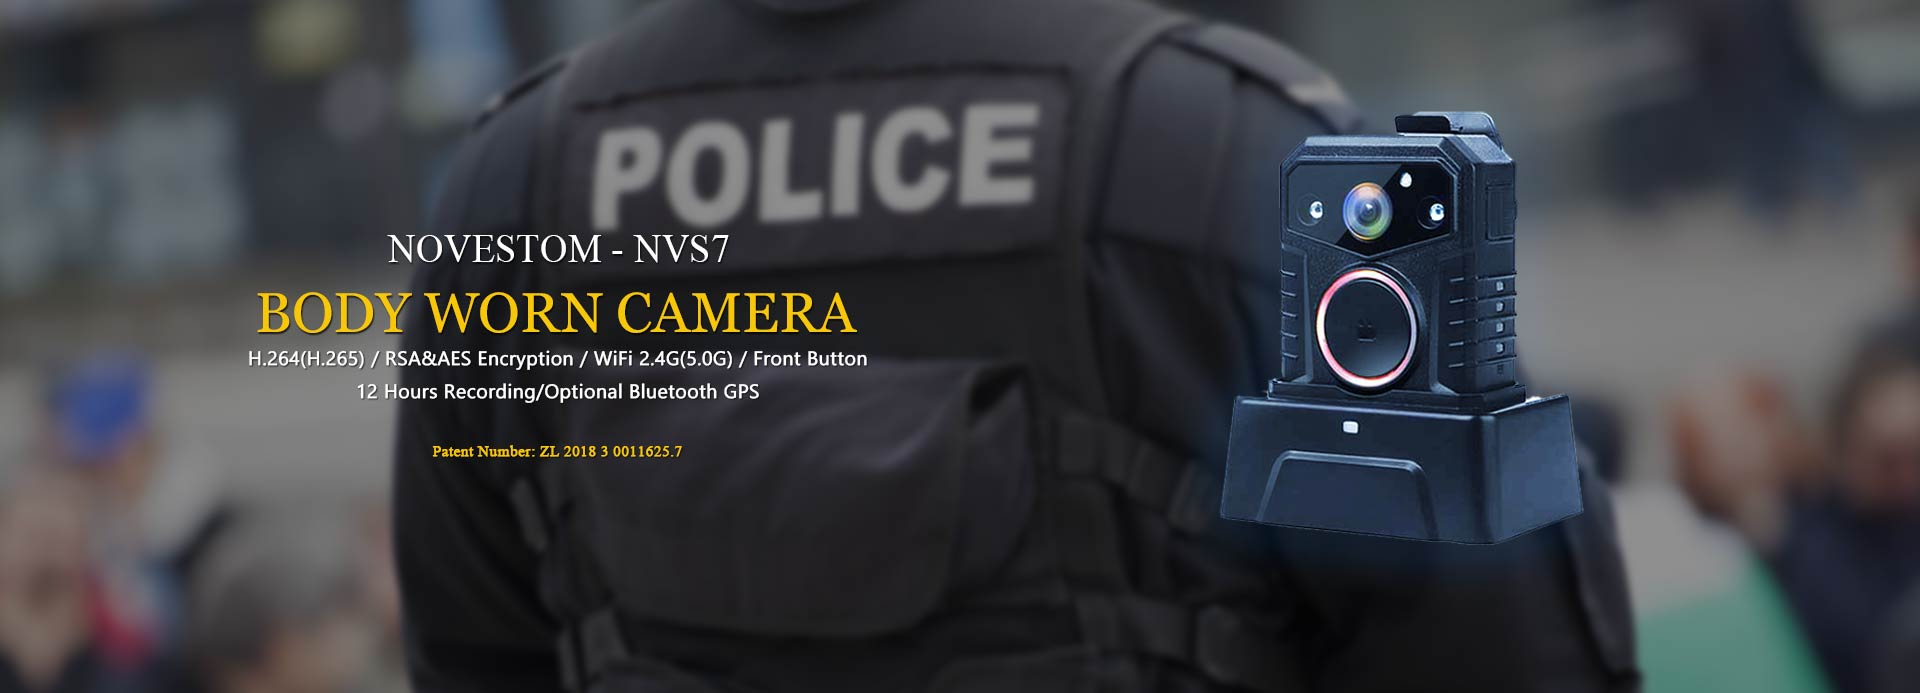 NVS7 wifi police style body worn video security cameras with GPS AES